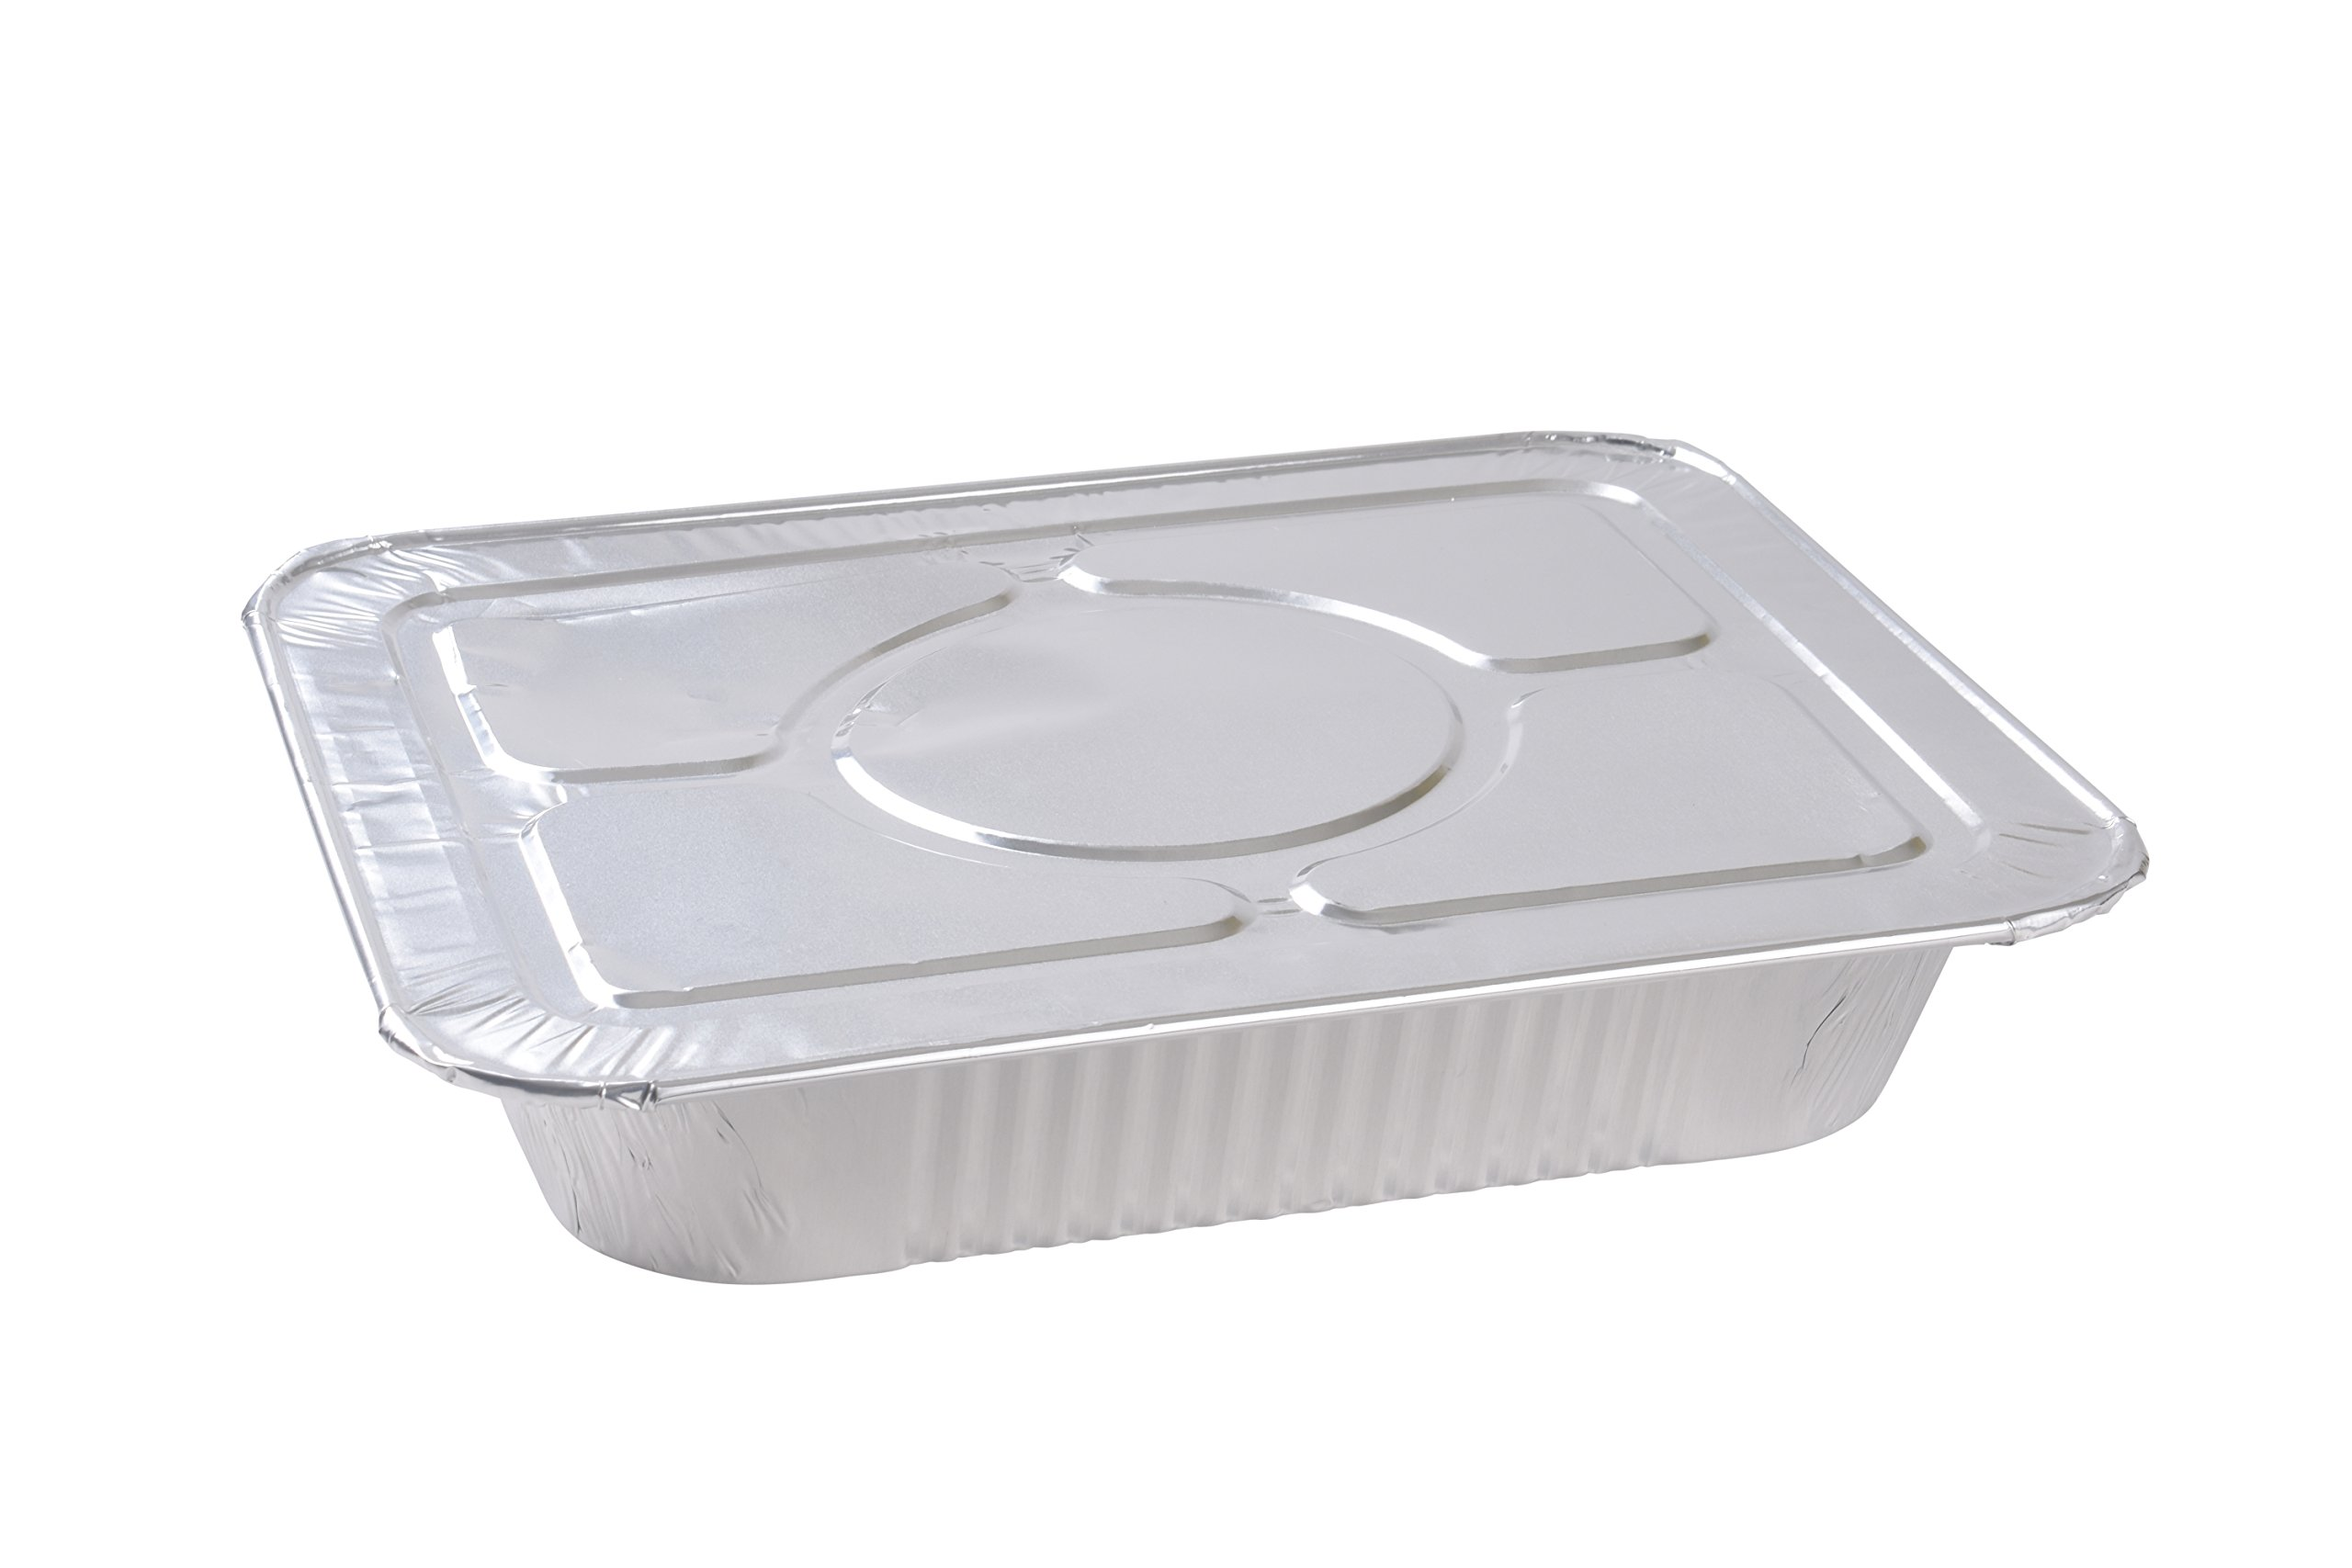 A World of Deals 9 X 13 Half Size Deep Foil Steam Pans with Lids, 30 Pack by A World Of Deals